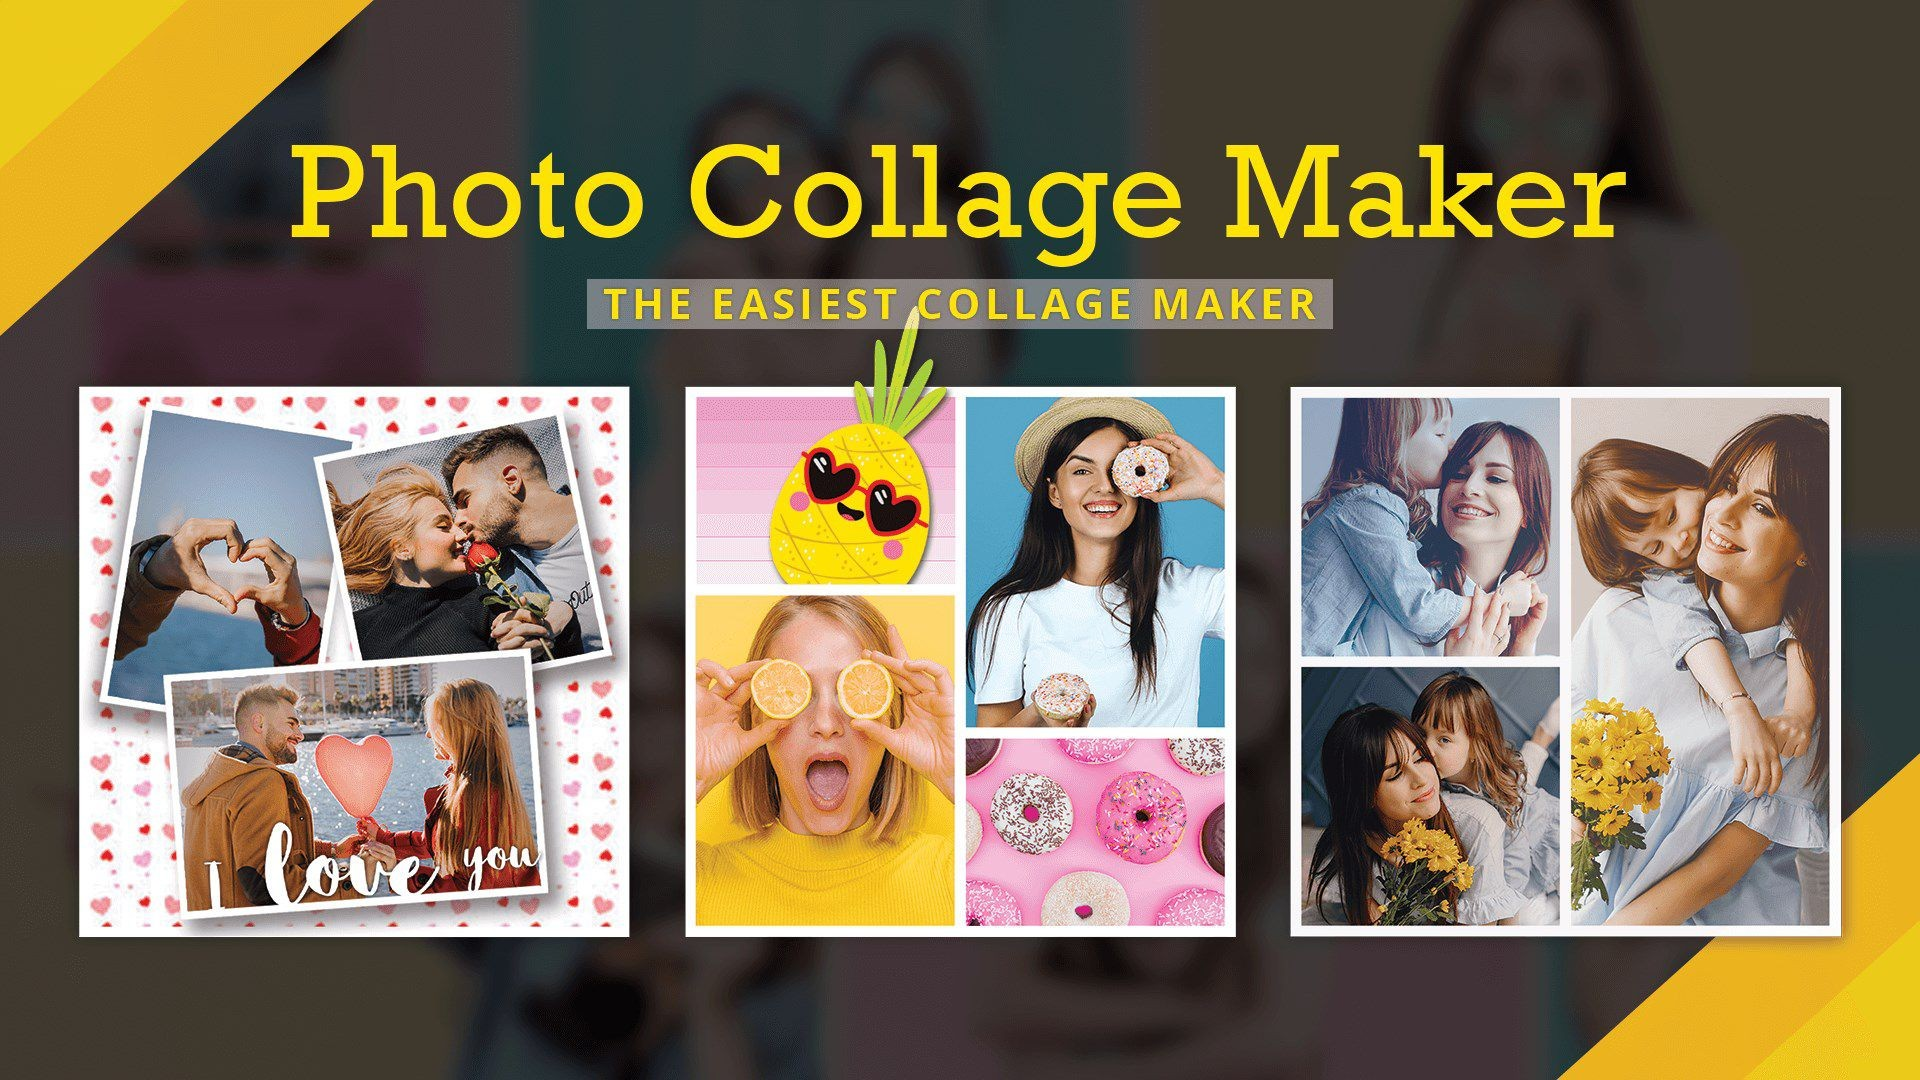 001 Archaicawful Free Photo Collage Template Download Idea  Picture Psd Powerpoint1920